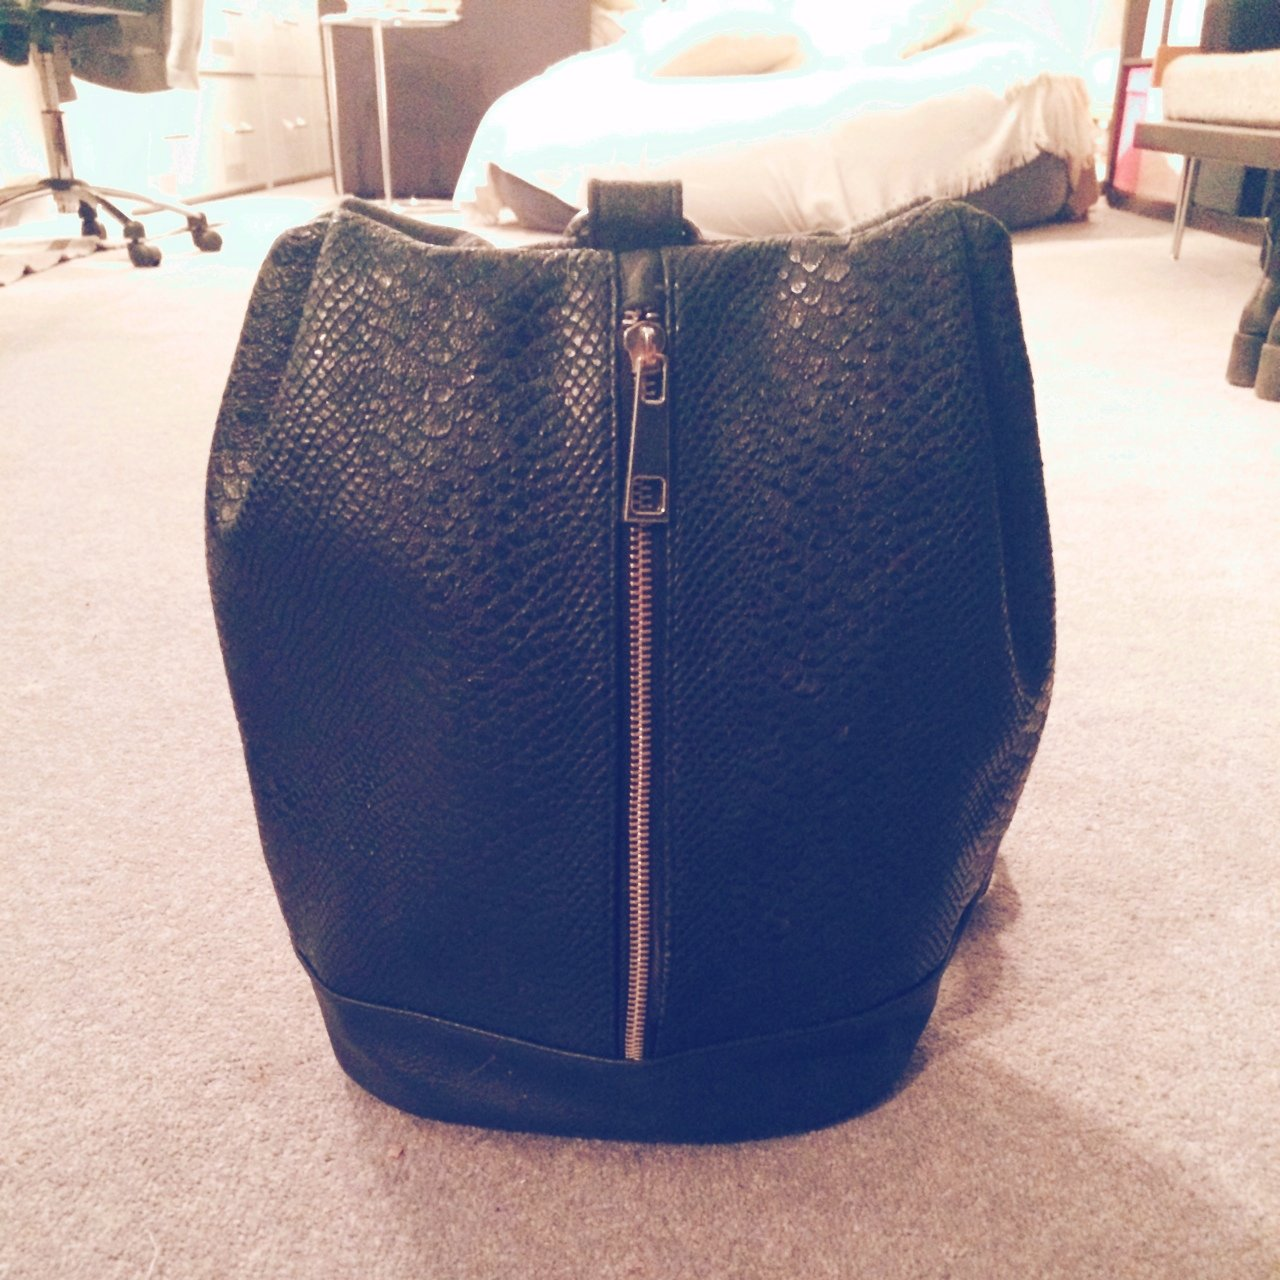 Faux leather crocodile skin backpack. 9024195917a04